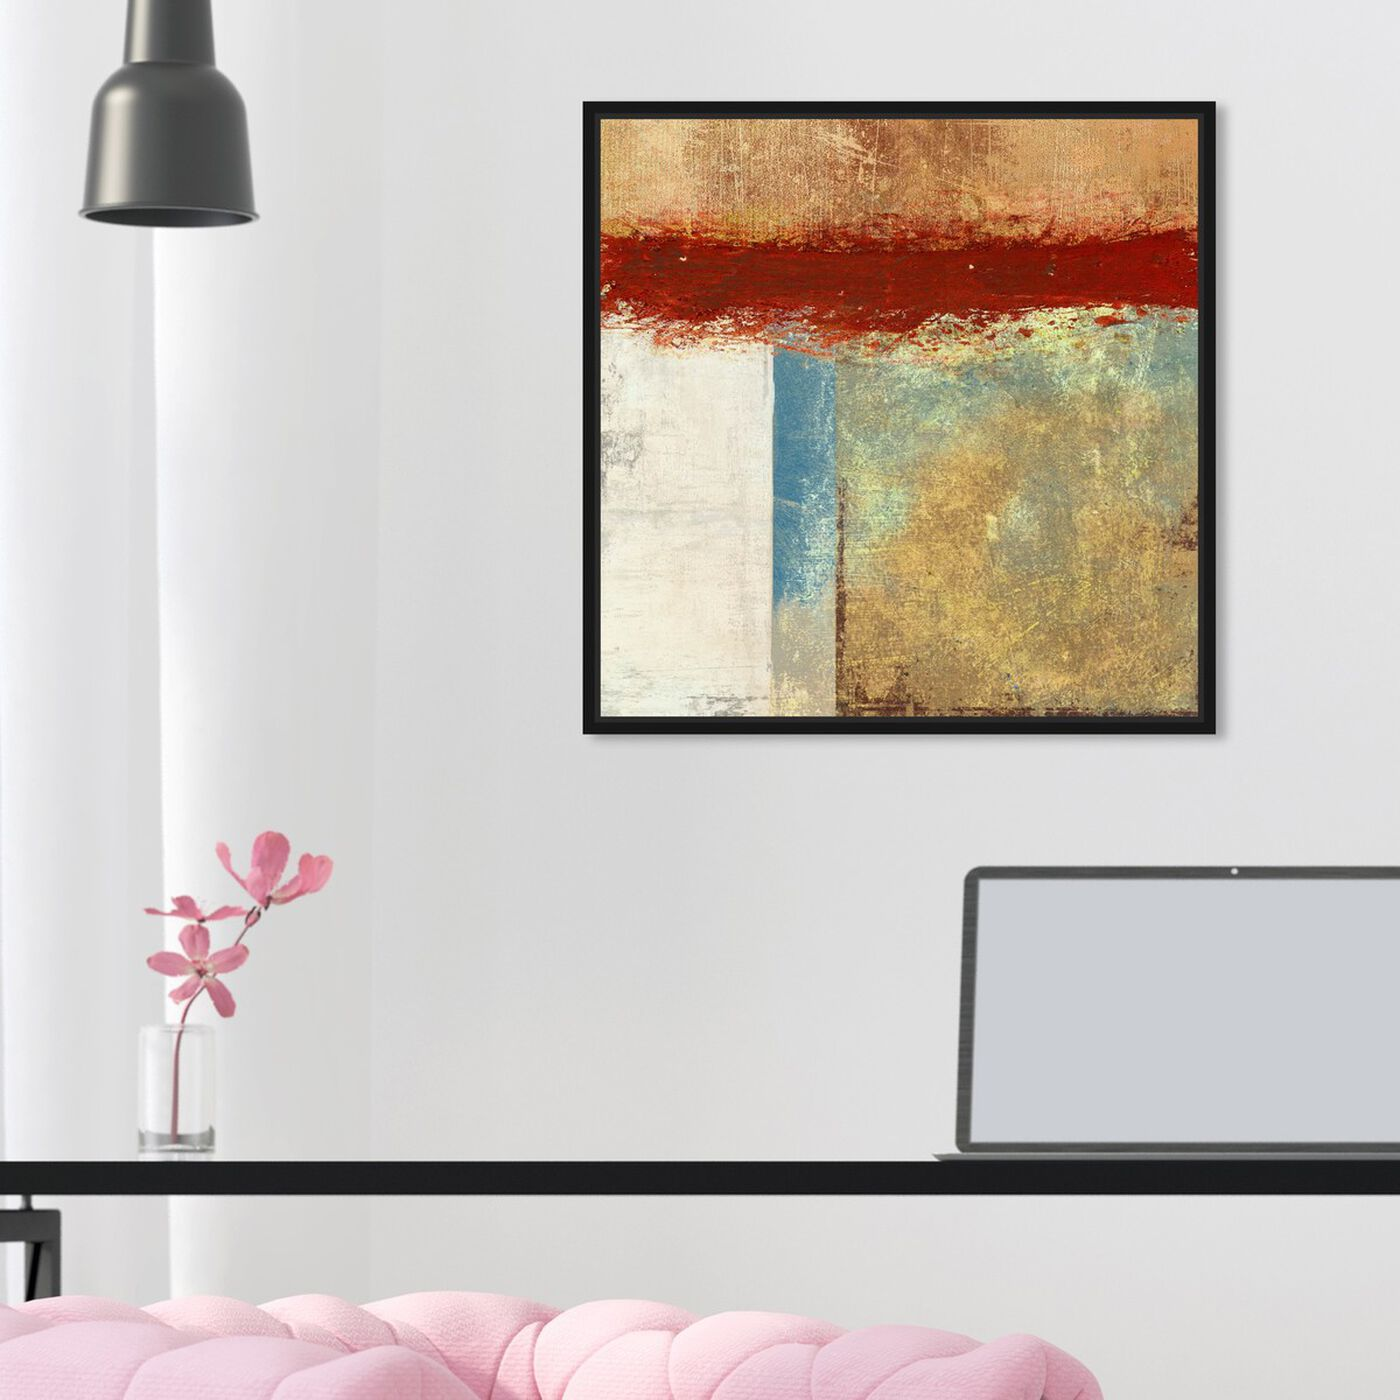 Hanging view of Sai - Paesaggio Geometrico featuring abstract and paint art.